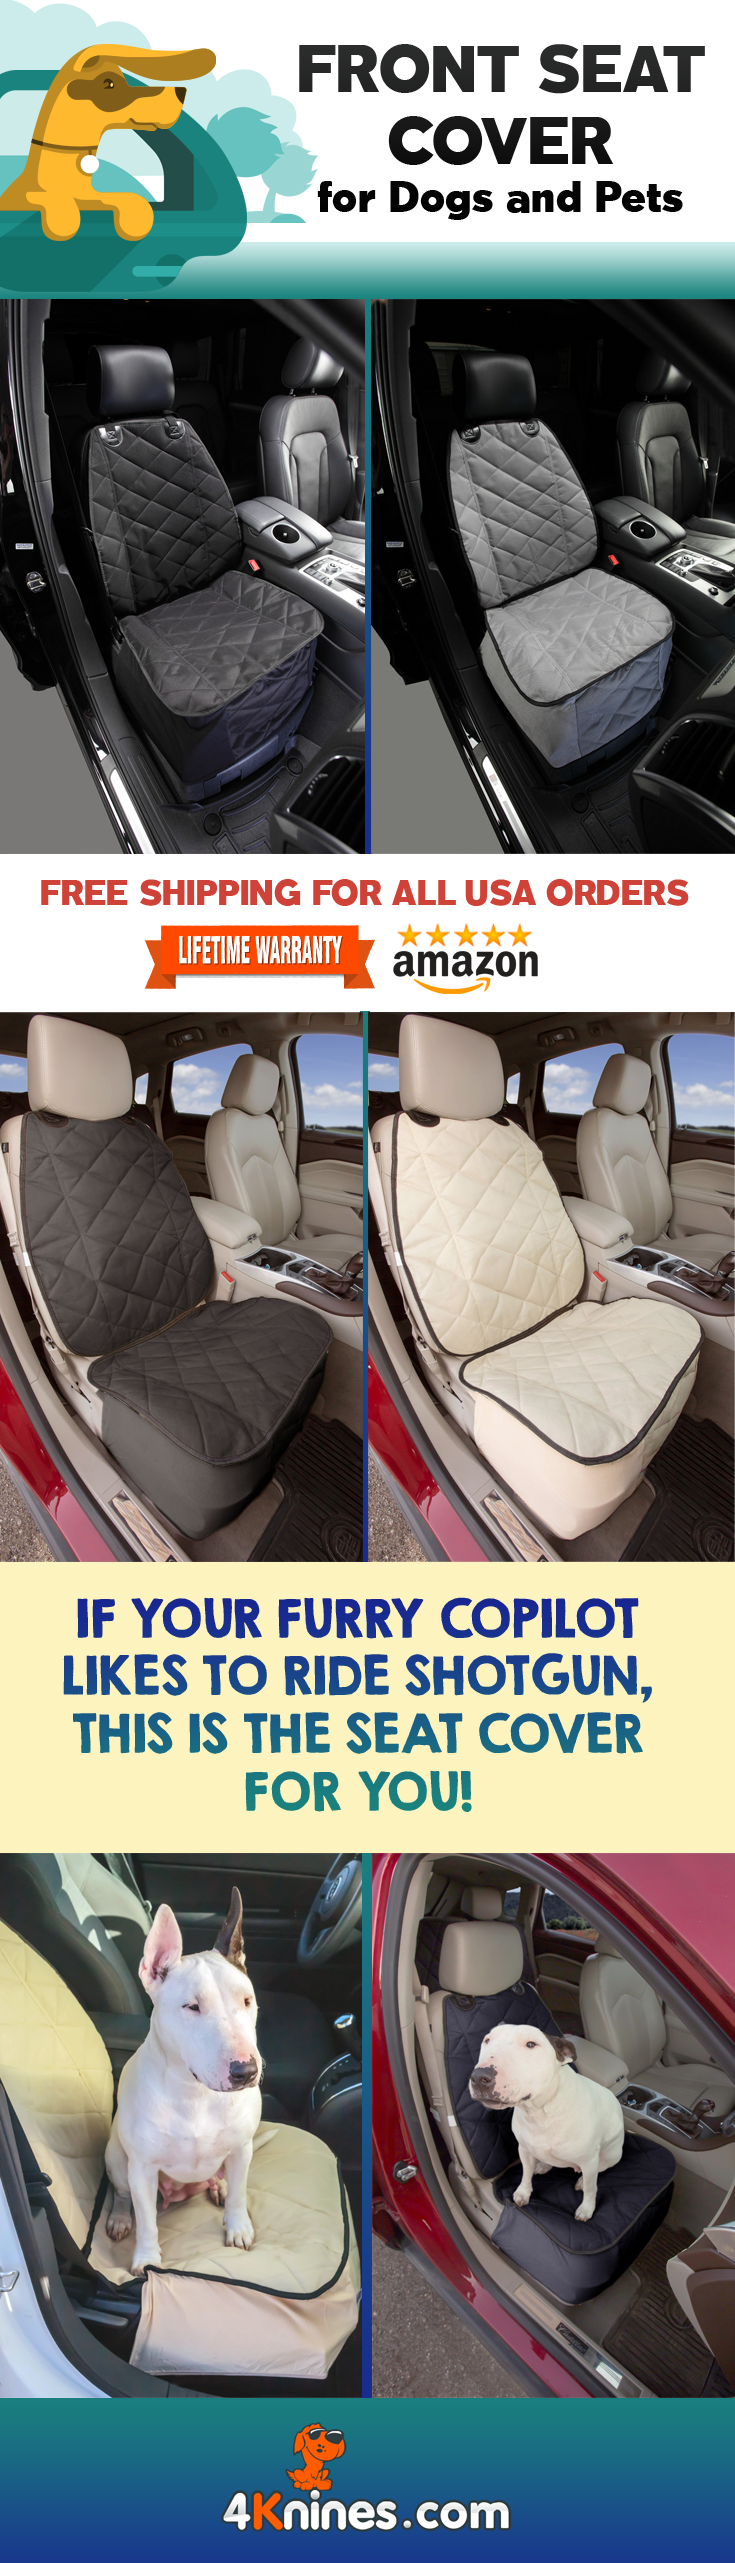 4Knines Split Seat Covers For Dogs And Pets Allows Use Of A 60 40 Check It Out Here 4knines Pages Rear Se